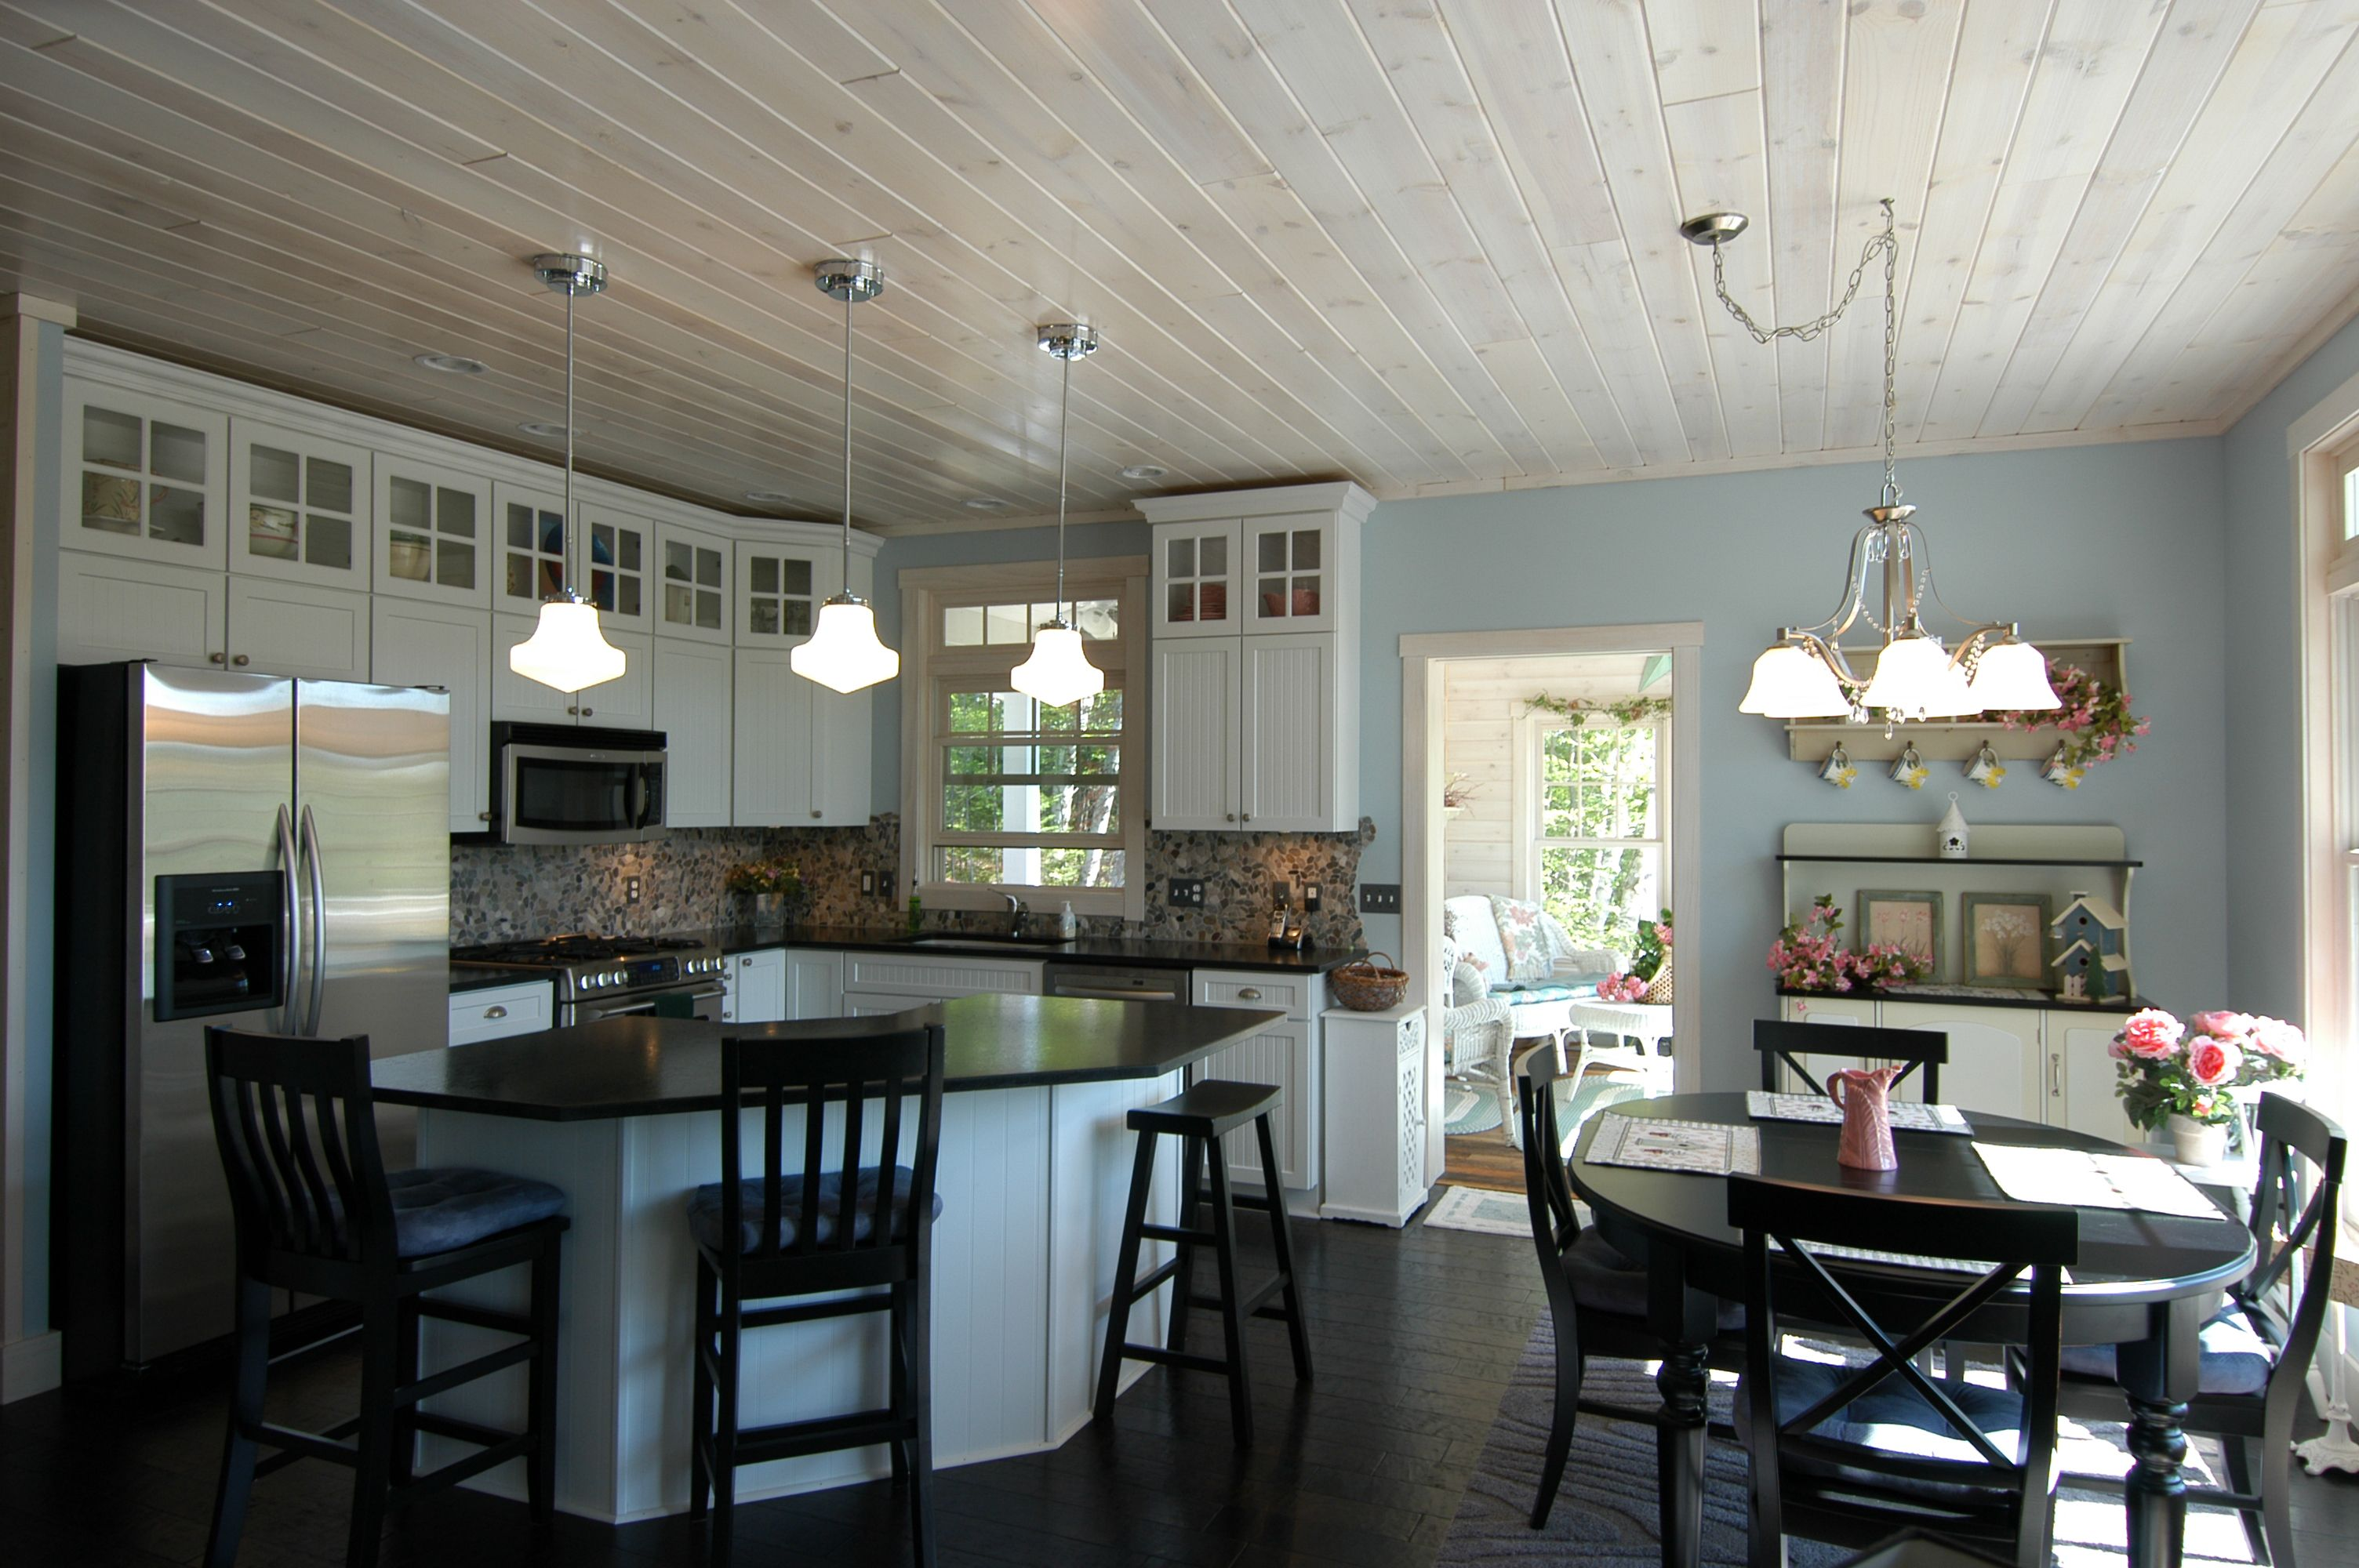 White Washed Pine Ceiling White Wash Ceiling Kitchen